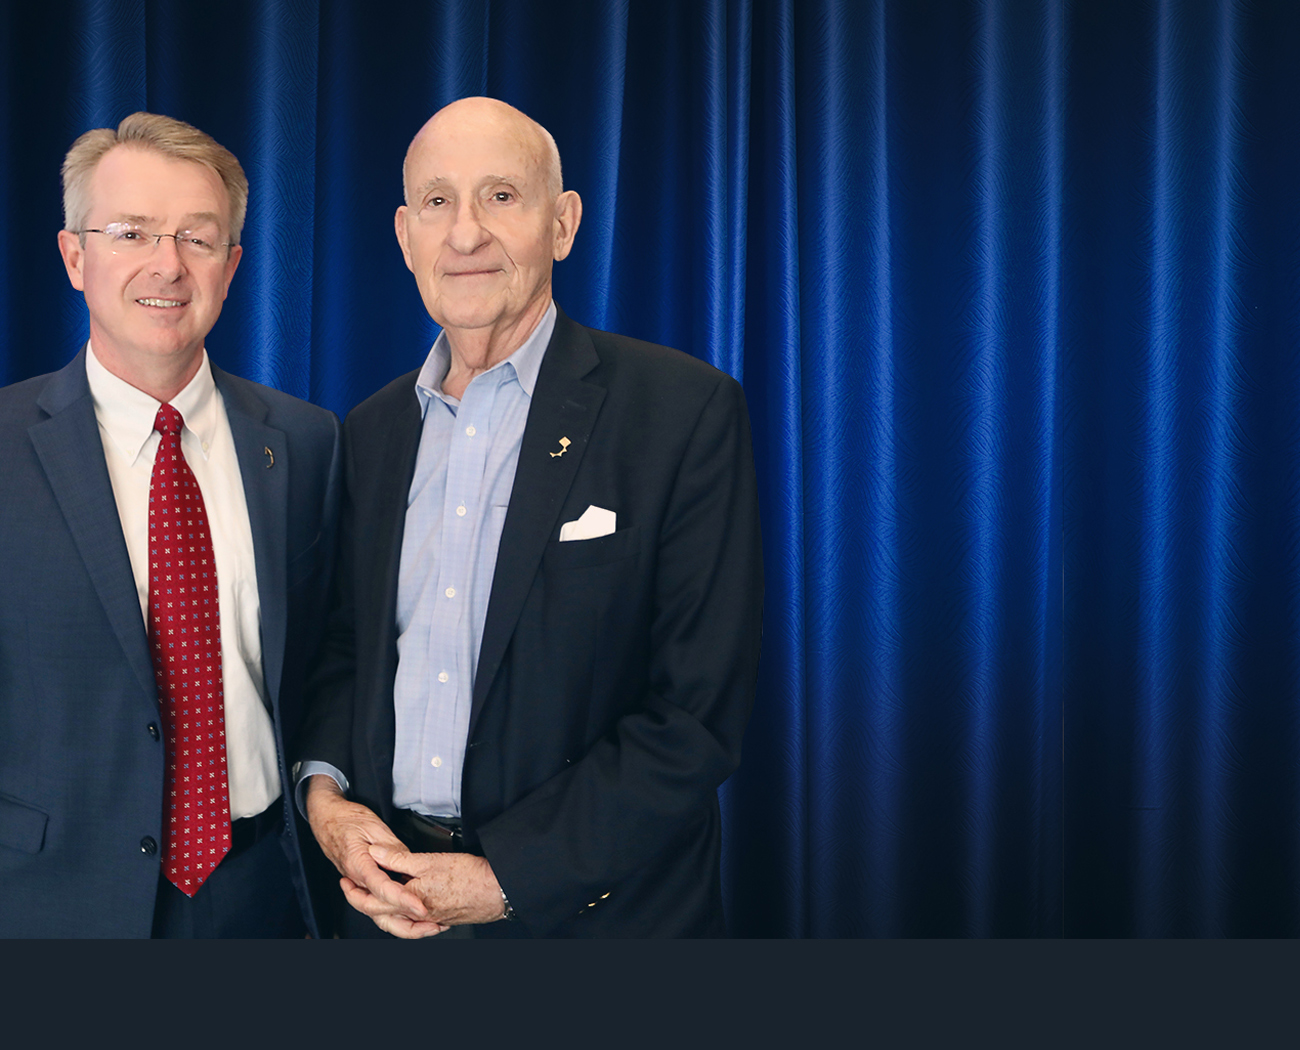 Photo of Patrick Frias, MD, Rady Children's CEO, and Ernest Rady